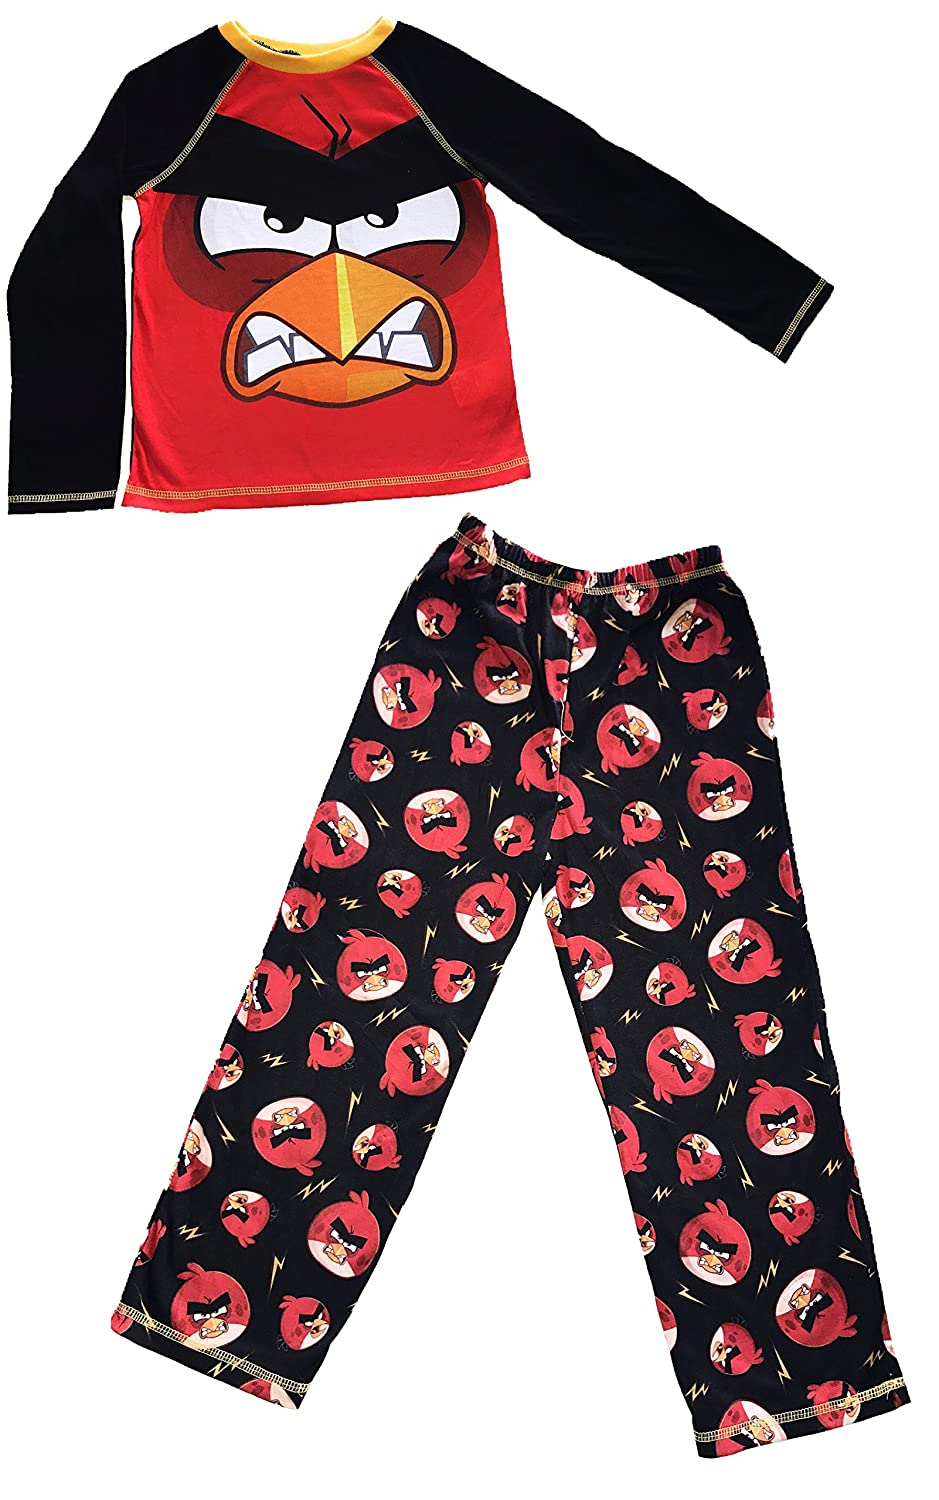 50%OFF ROYAL BOYS BOYS SLEEPWEAR ROYAL ボーイズ Small SLEEPWEAR B075LX4PXC, 作業服専門店 ワークキング:677502df --- a0267596.xsph.ru